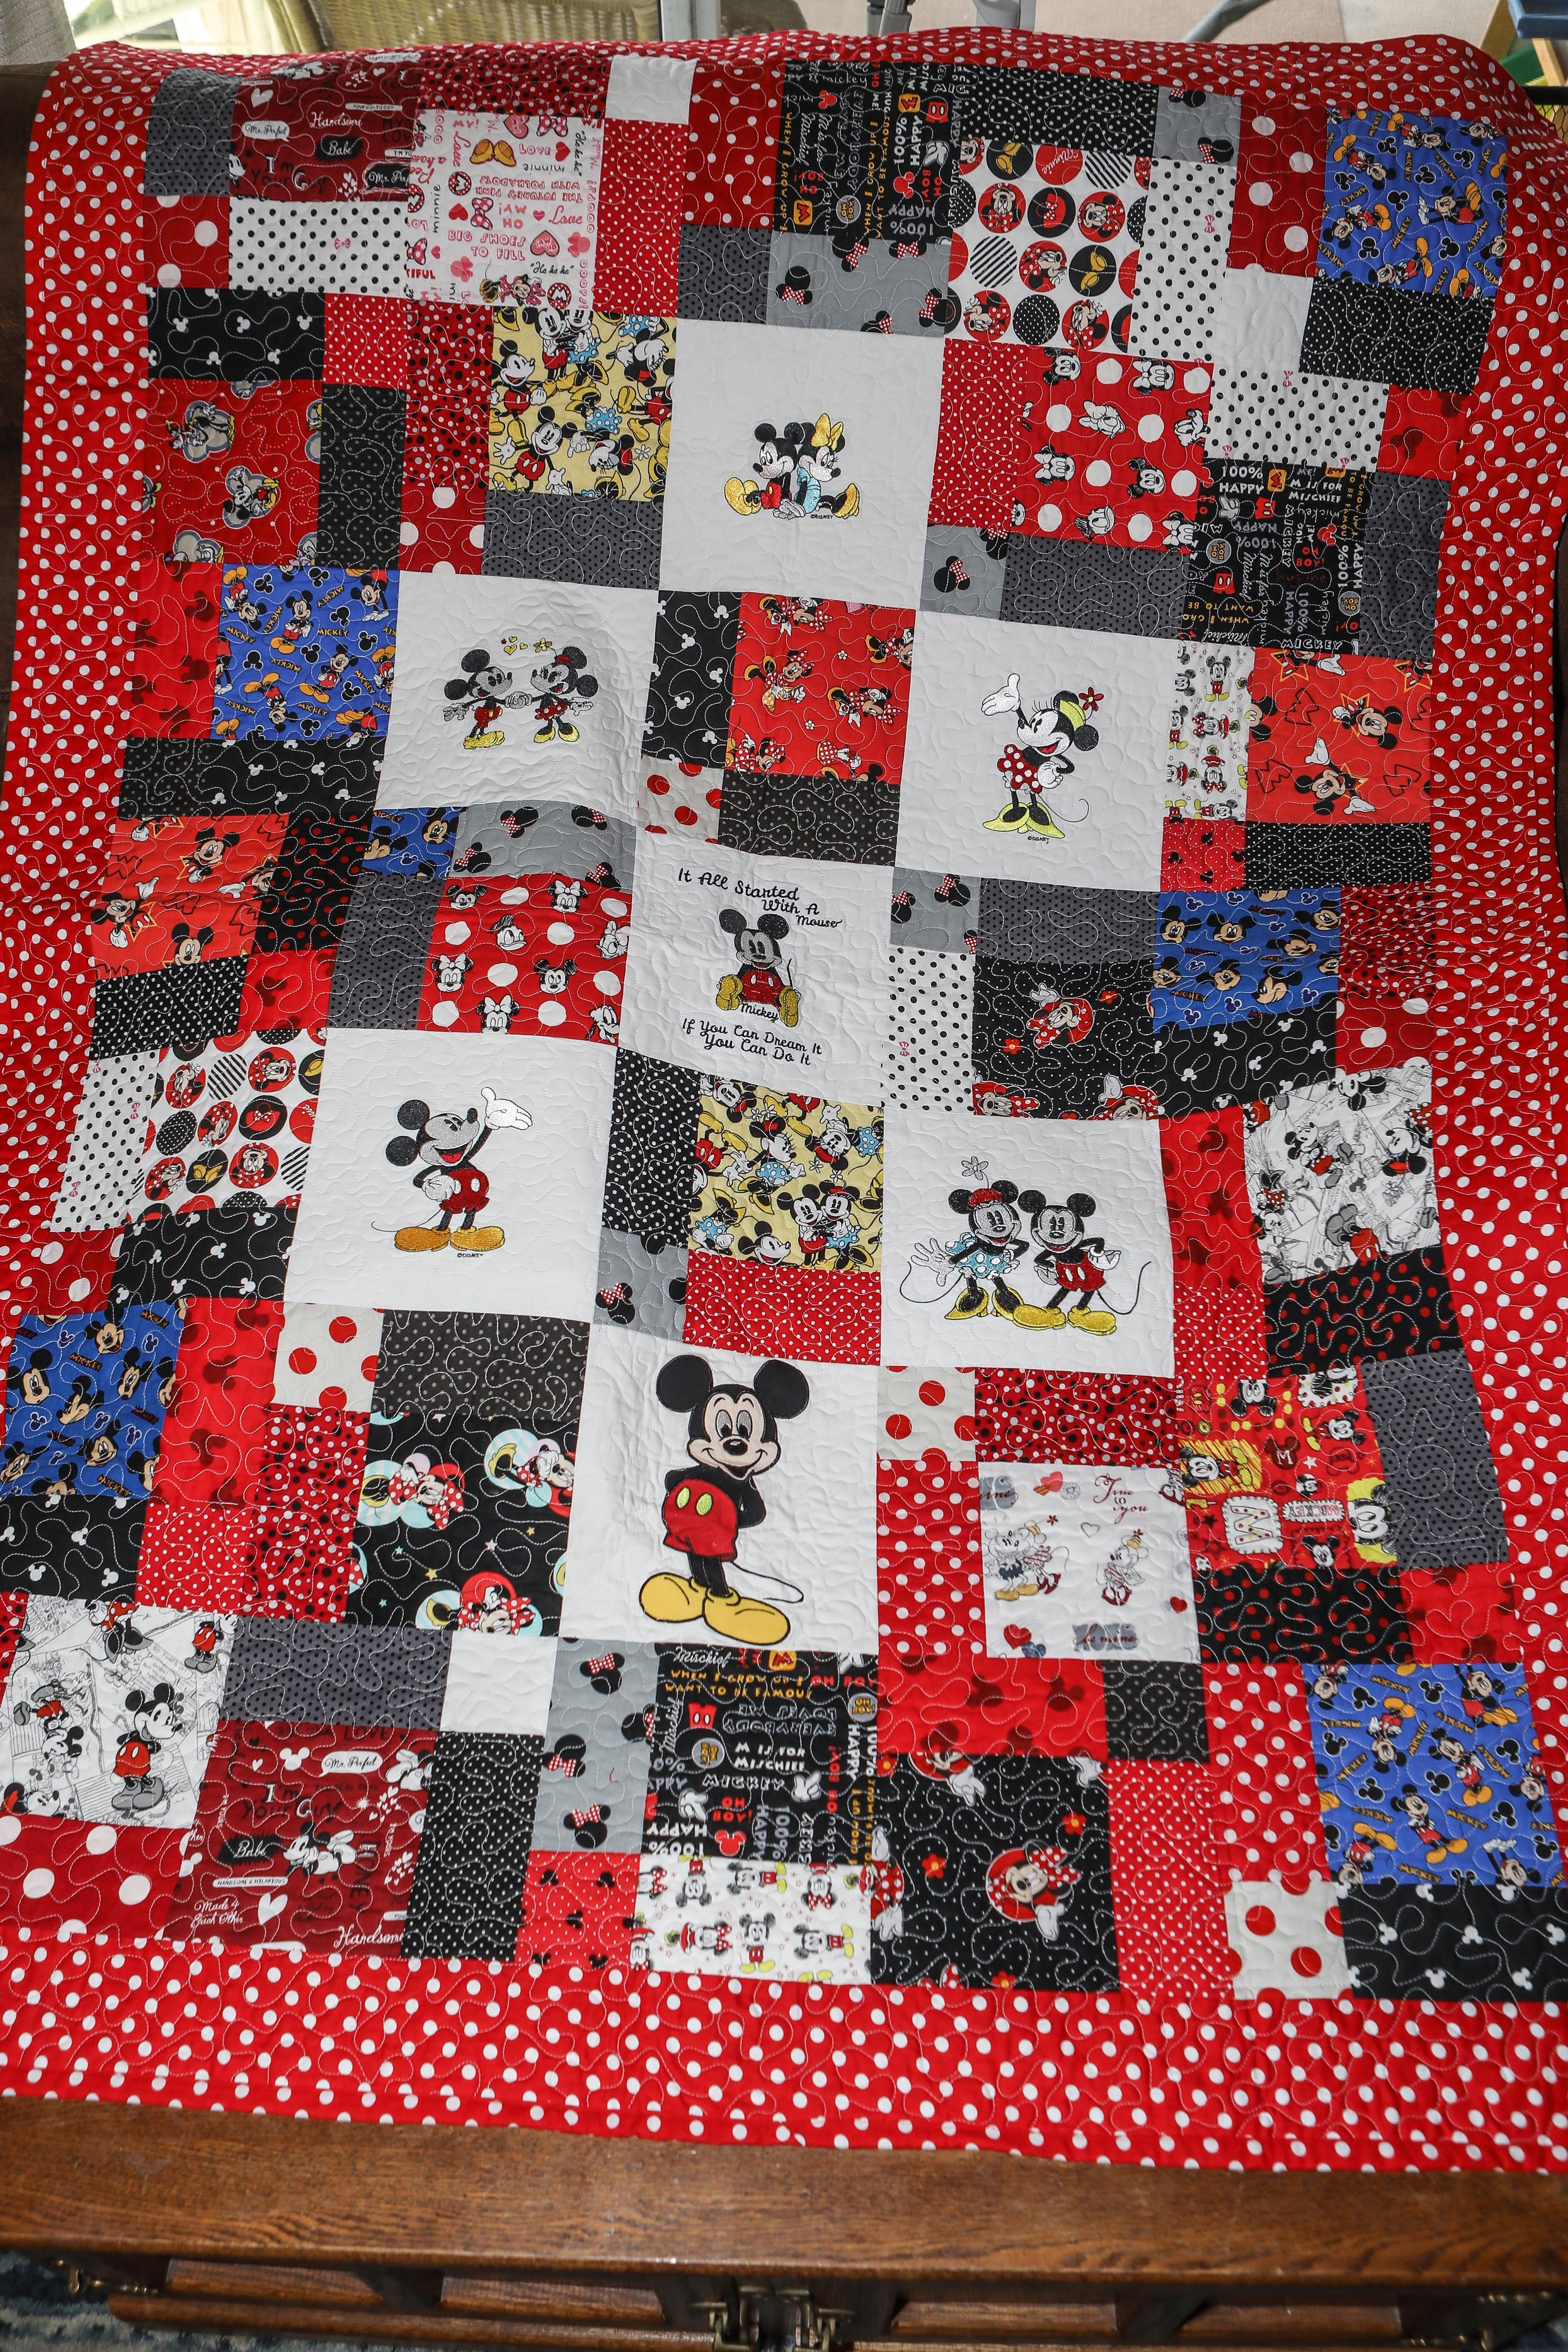 Couette Mickey This Disney Mickey Mouse Quilt Is For Sale On Etsy In My Shop